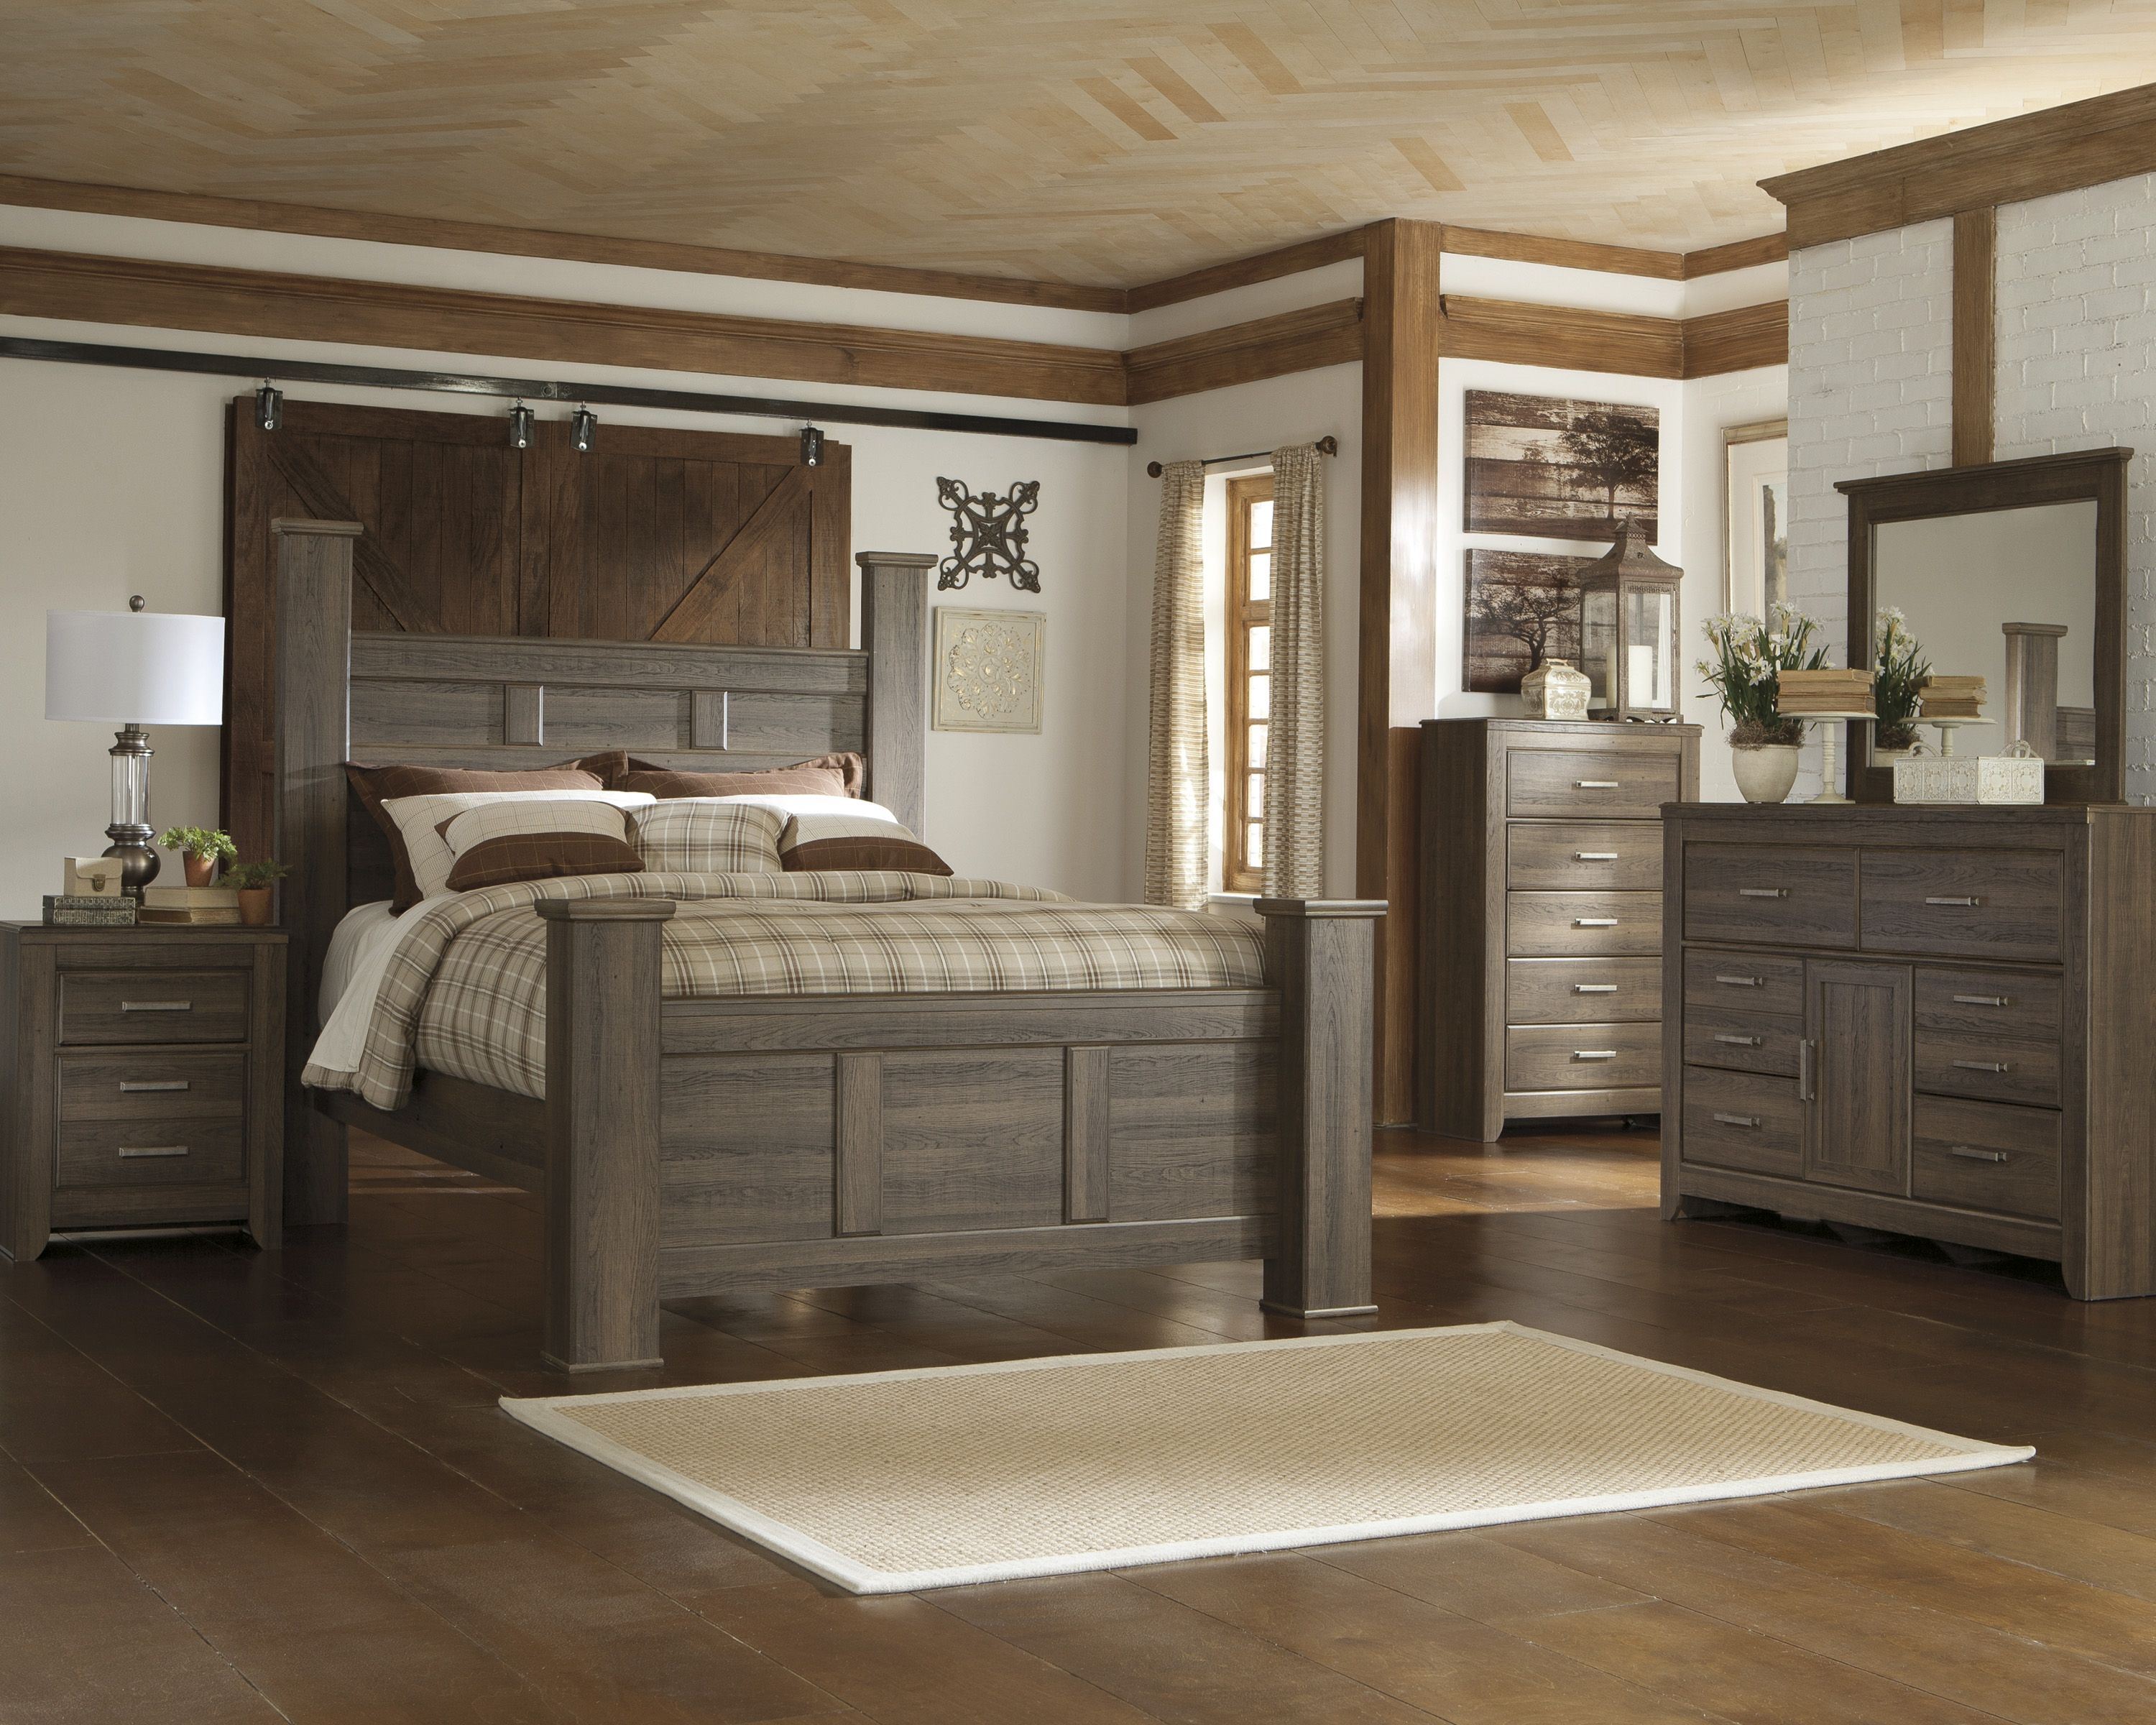 Signature Design Bedroom Set  Bedroom Sets  Pinterest  Design New Used Bedroom Furniture Review